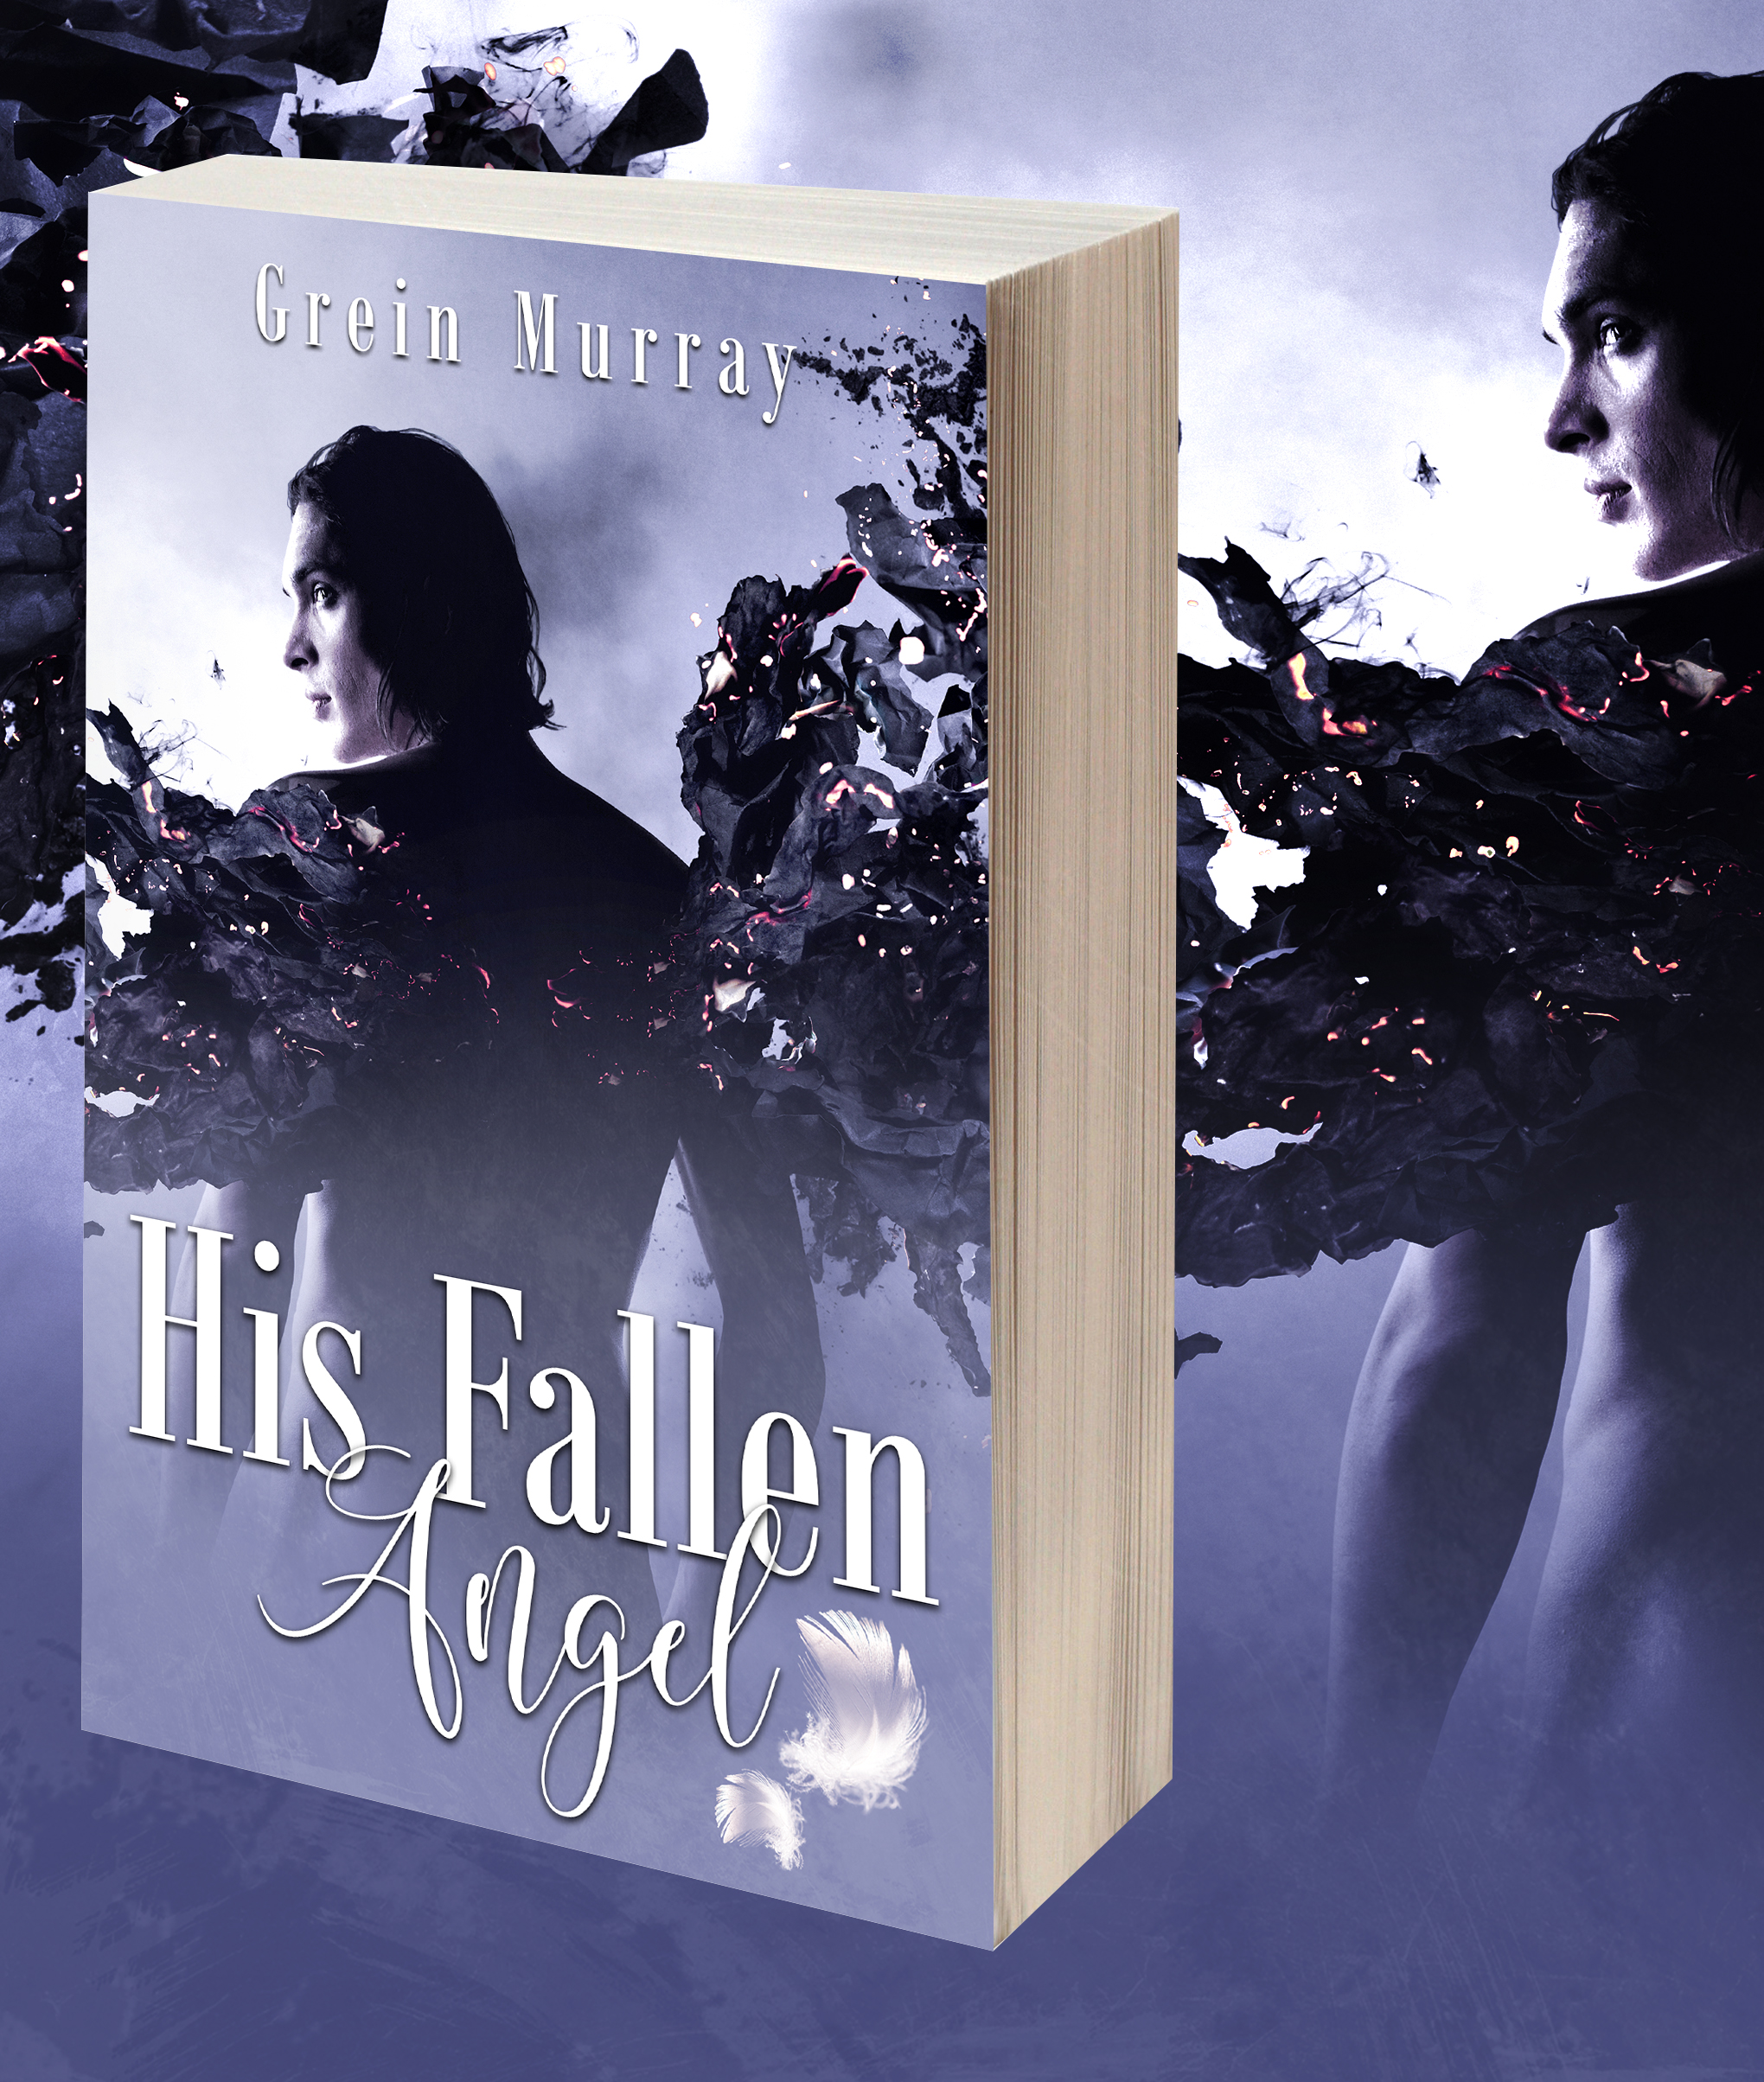 BOOK BLAST: His Fallen Angel by Grein Murray